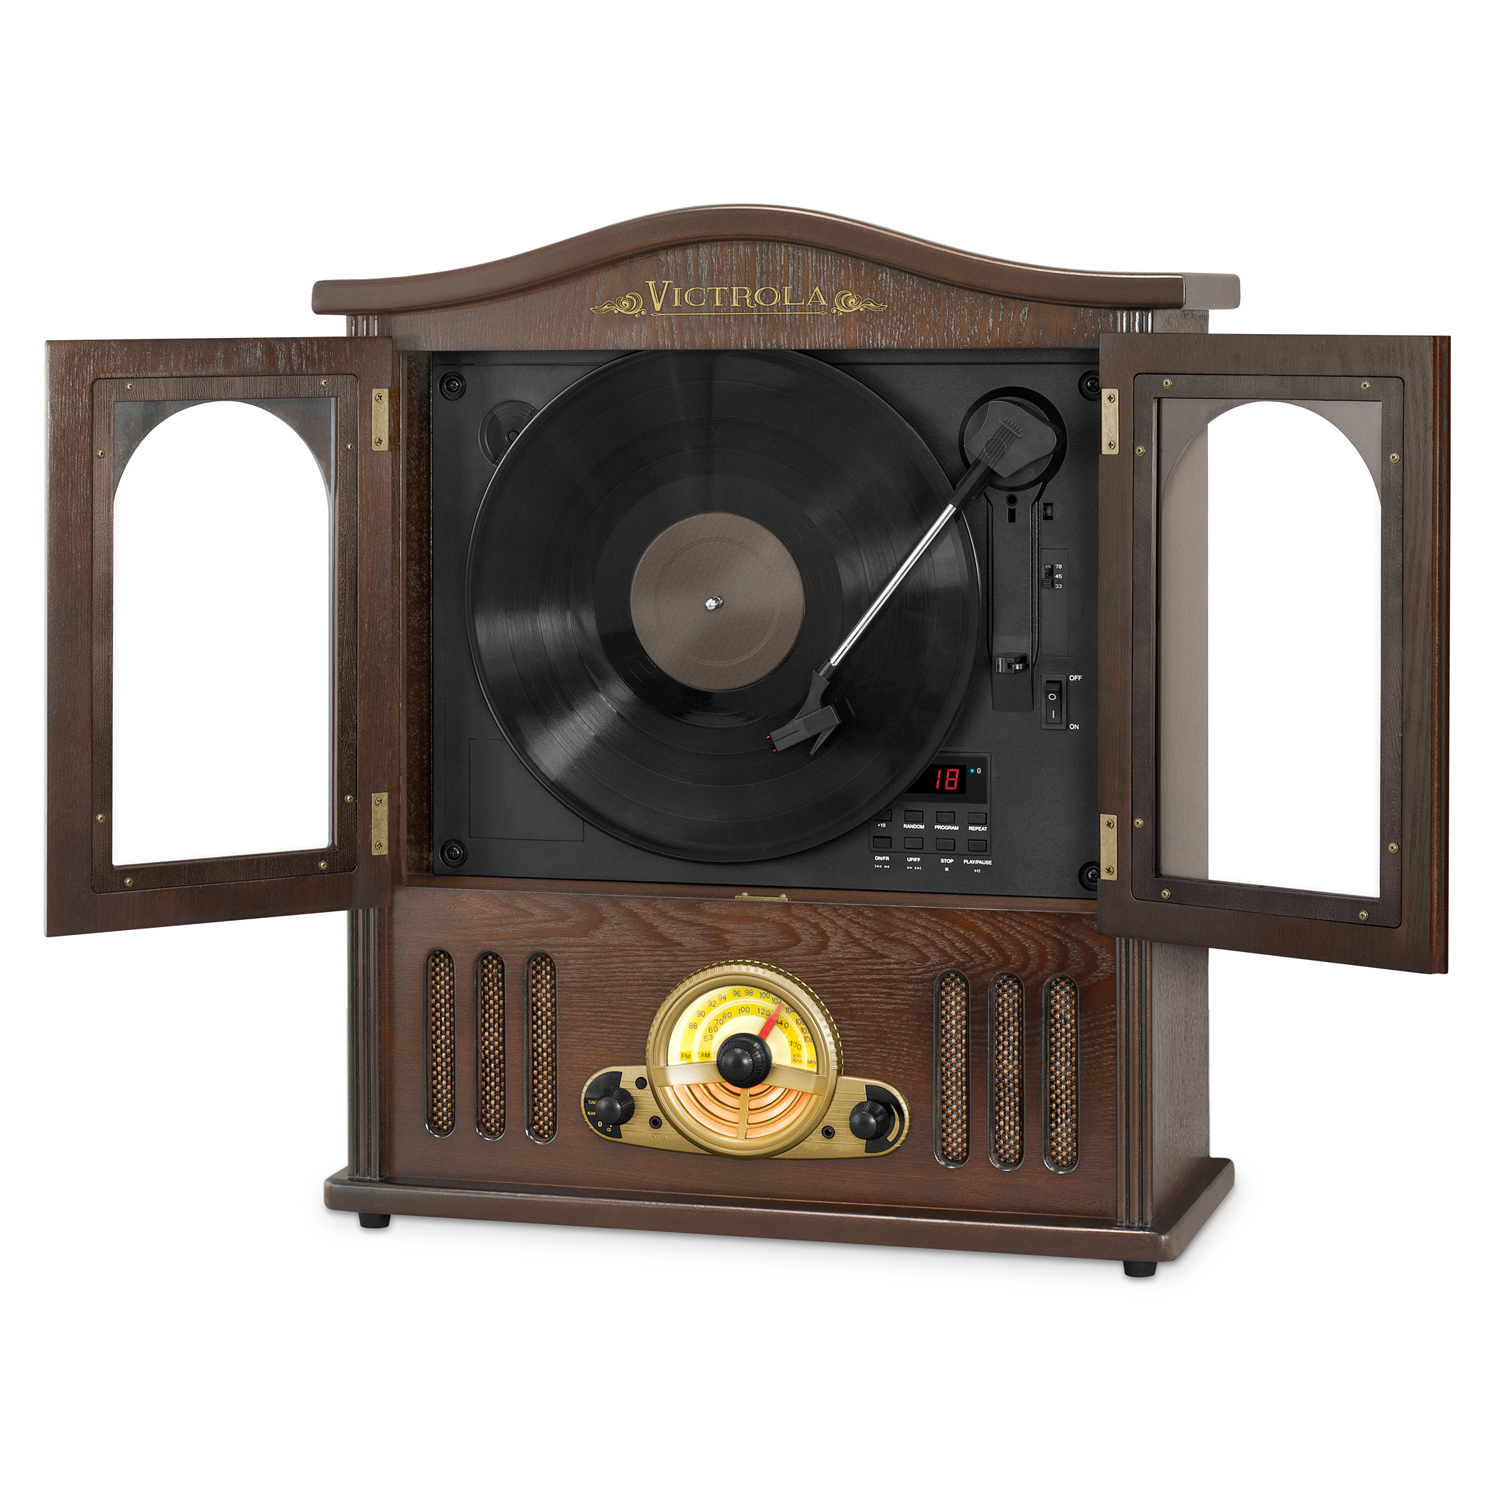 victrola vta 25 wooden wall mount nostalgic record player with vertical turntable cd and bluetooth. Black Bedroom Furniture Sets. Home Design Ideas